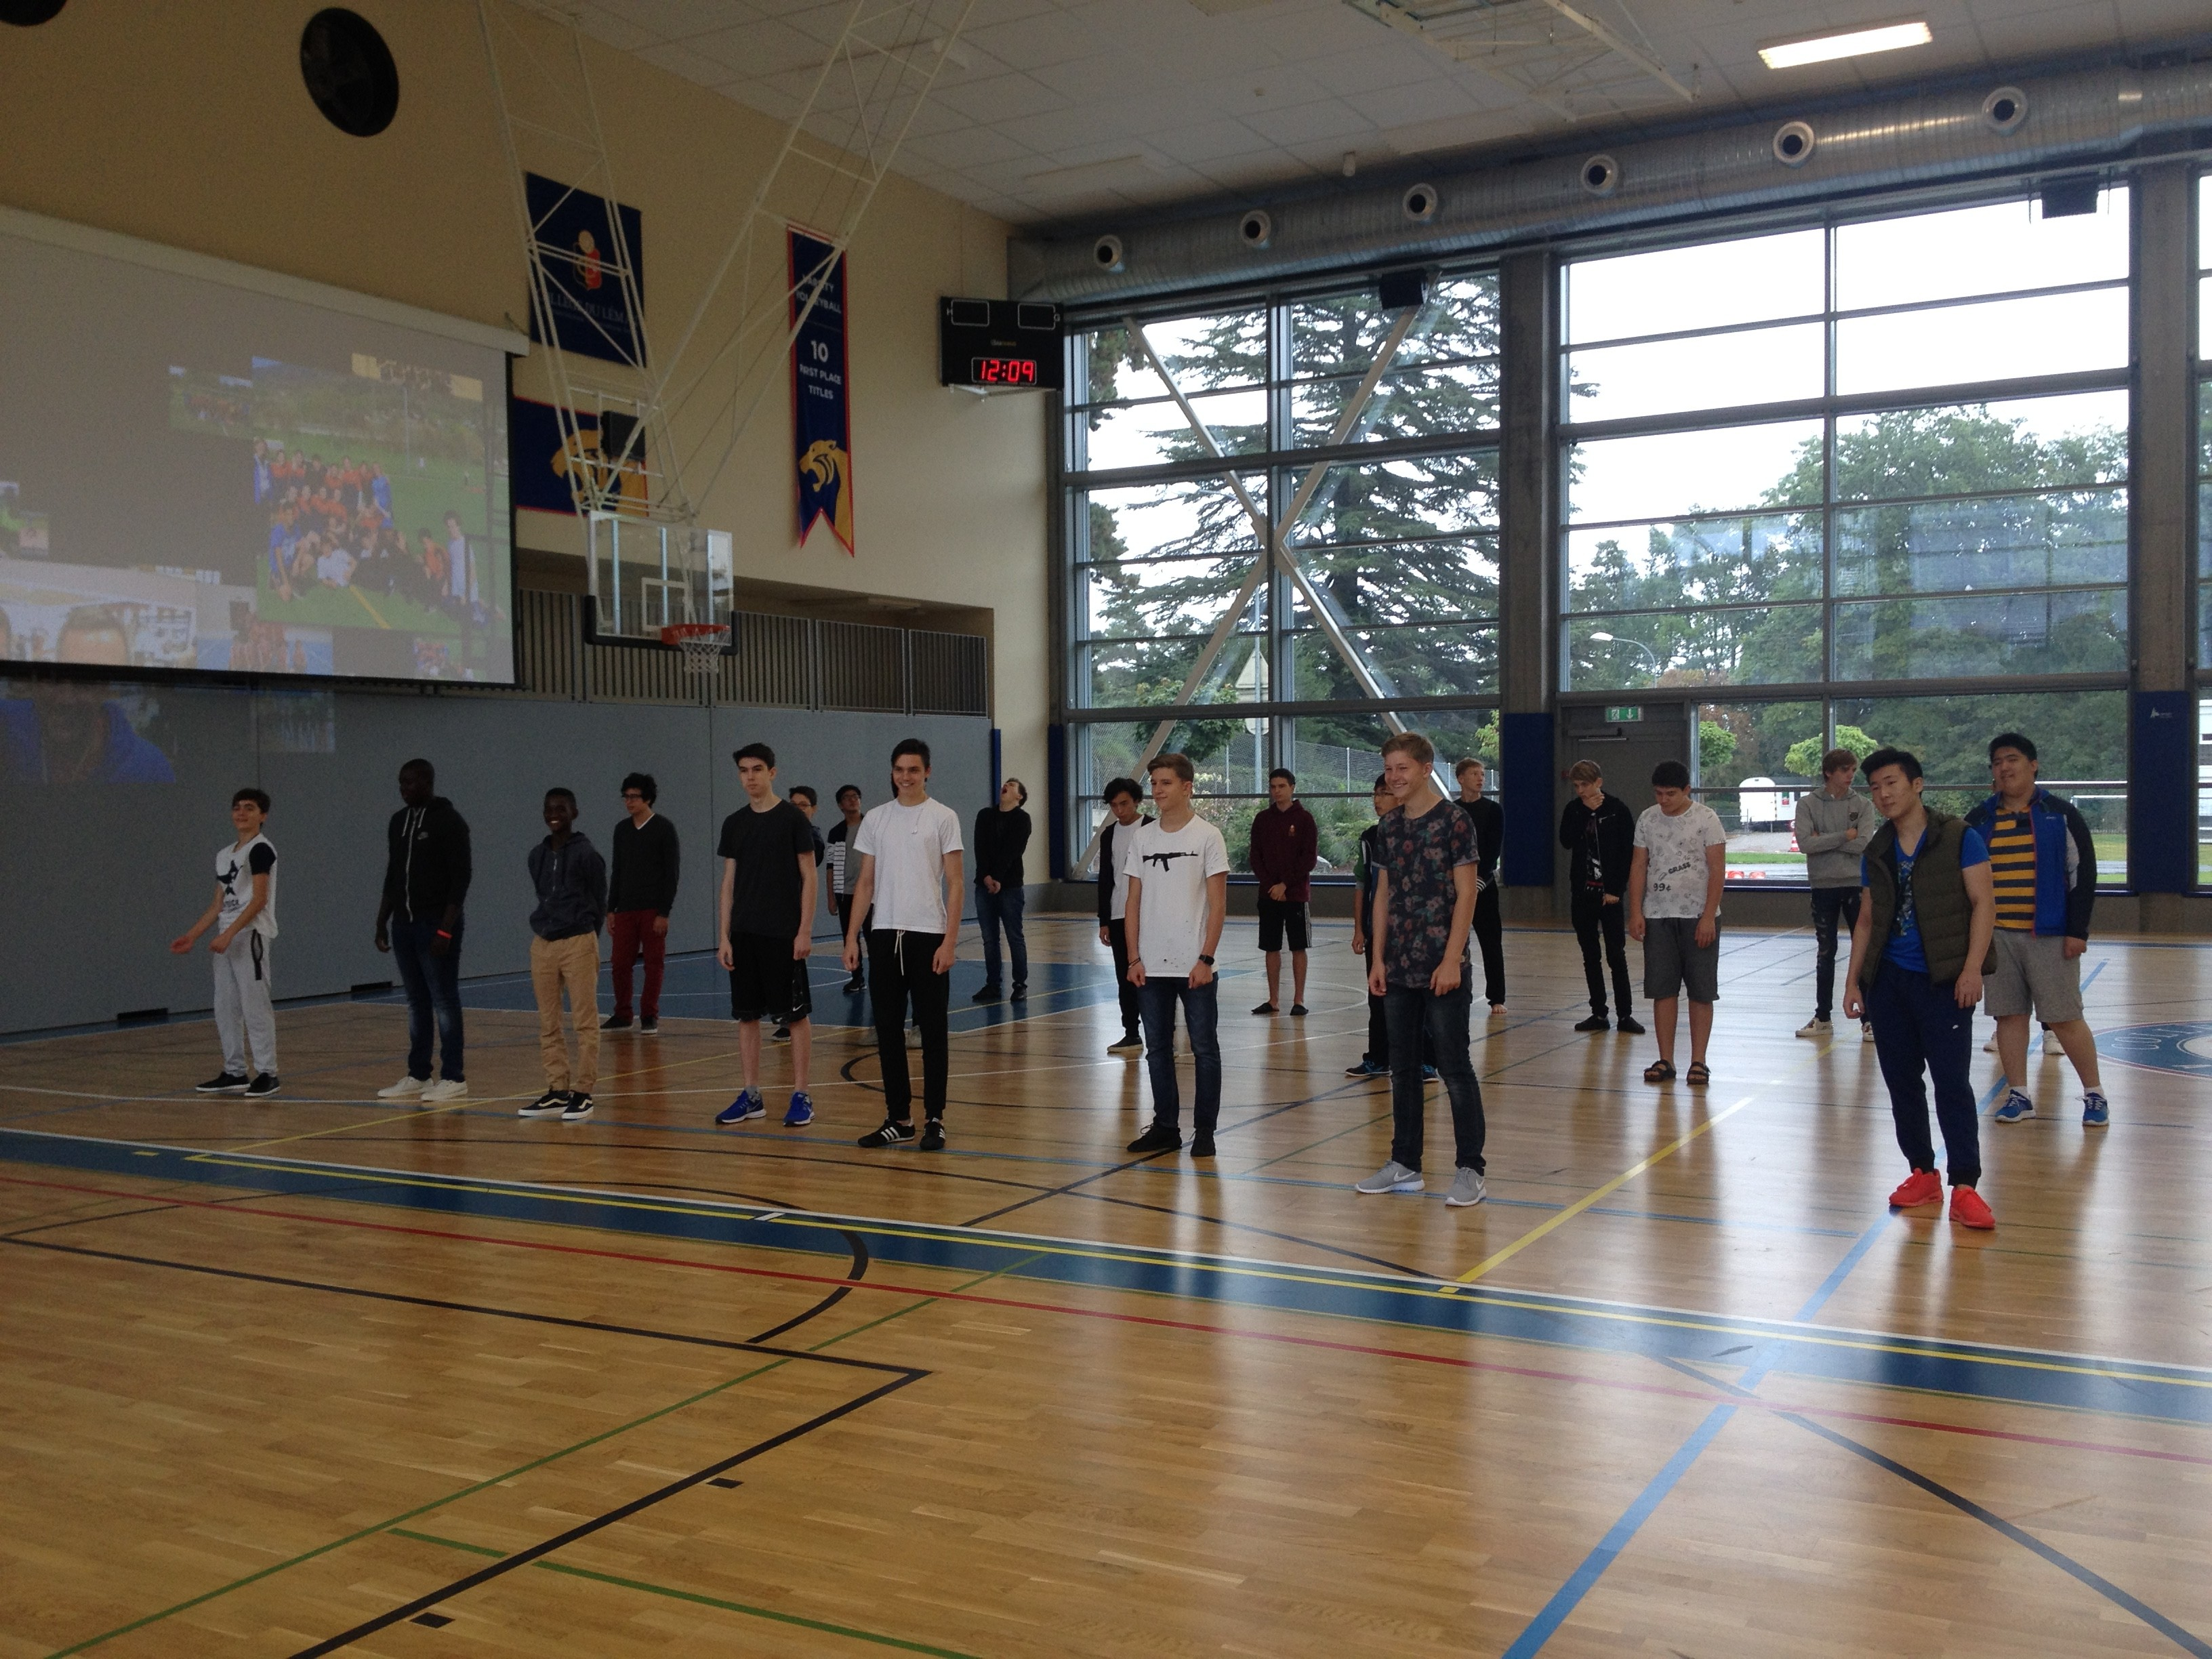 Rehearsing for the House competition